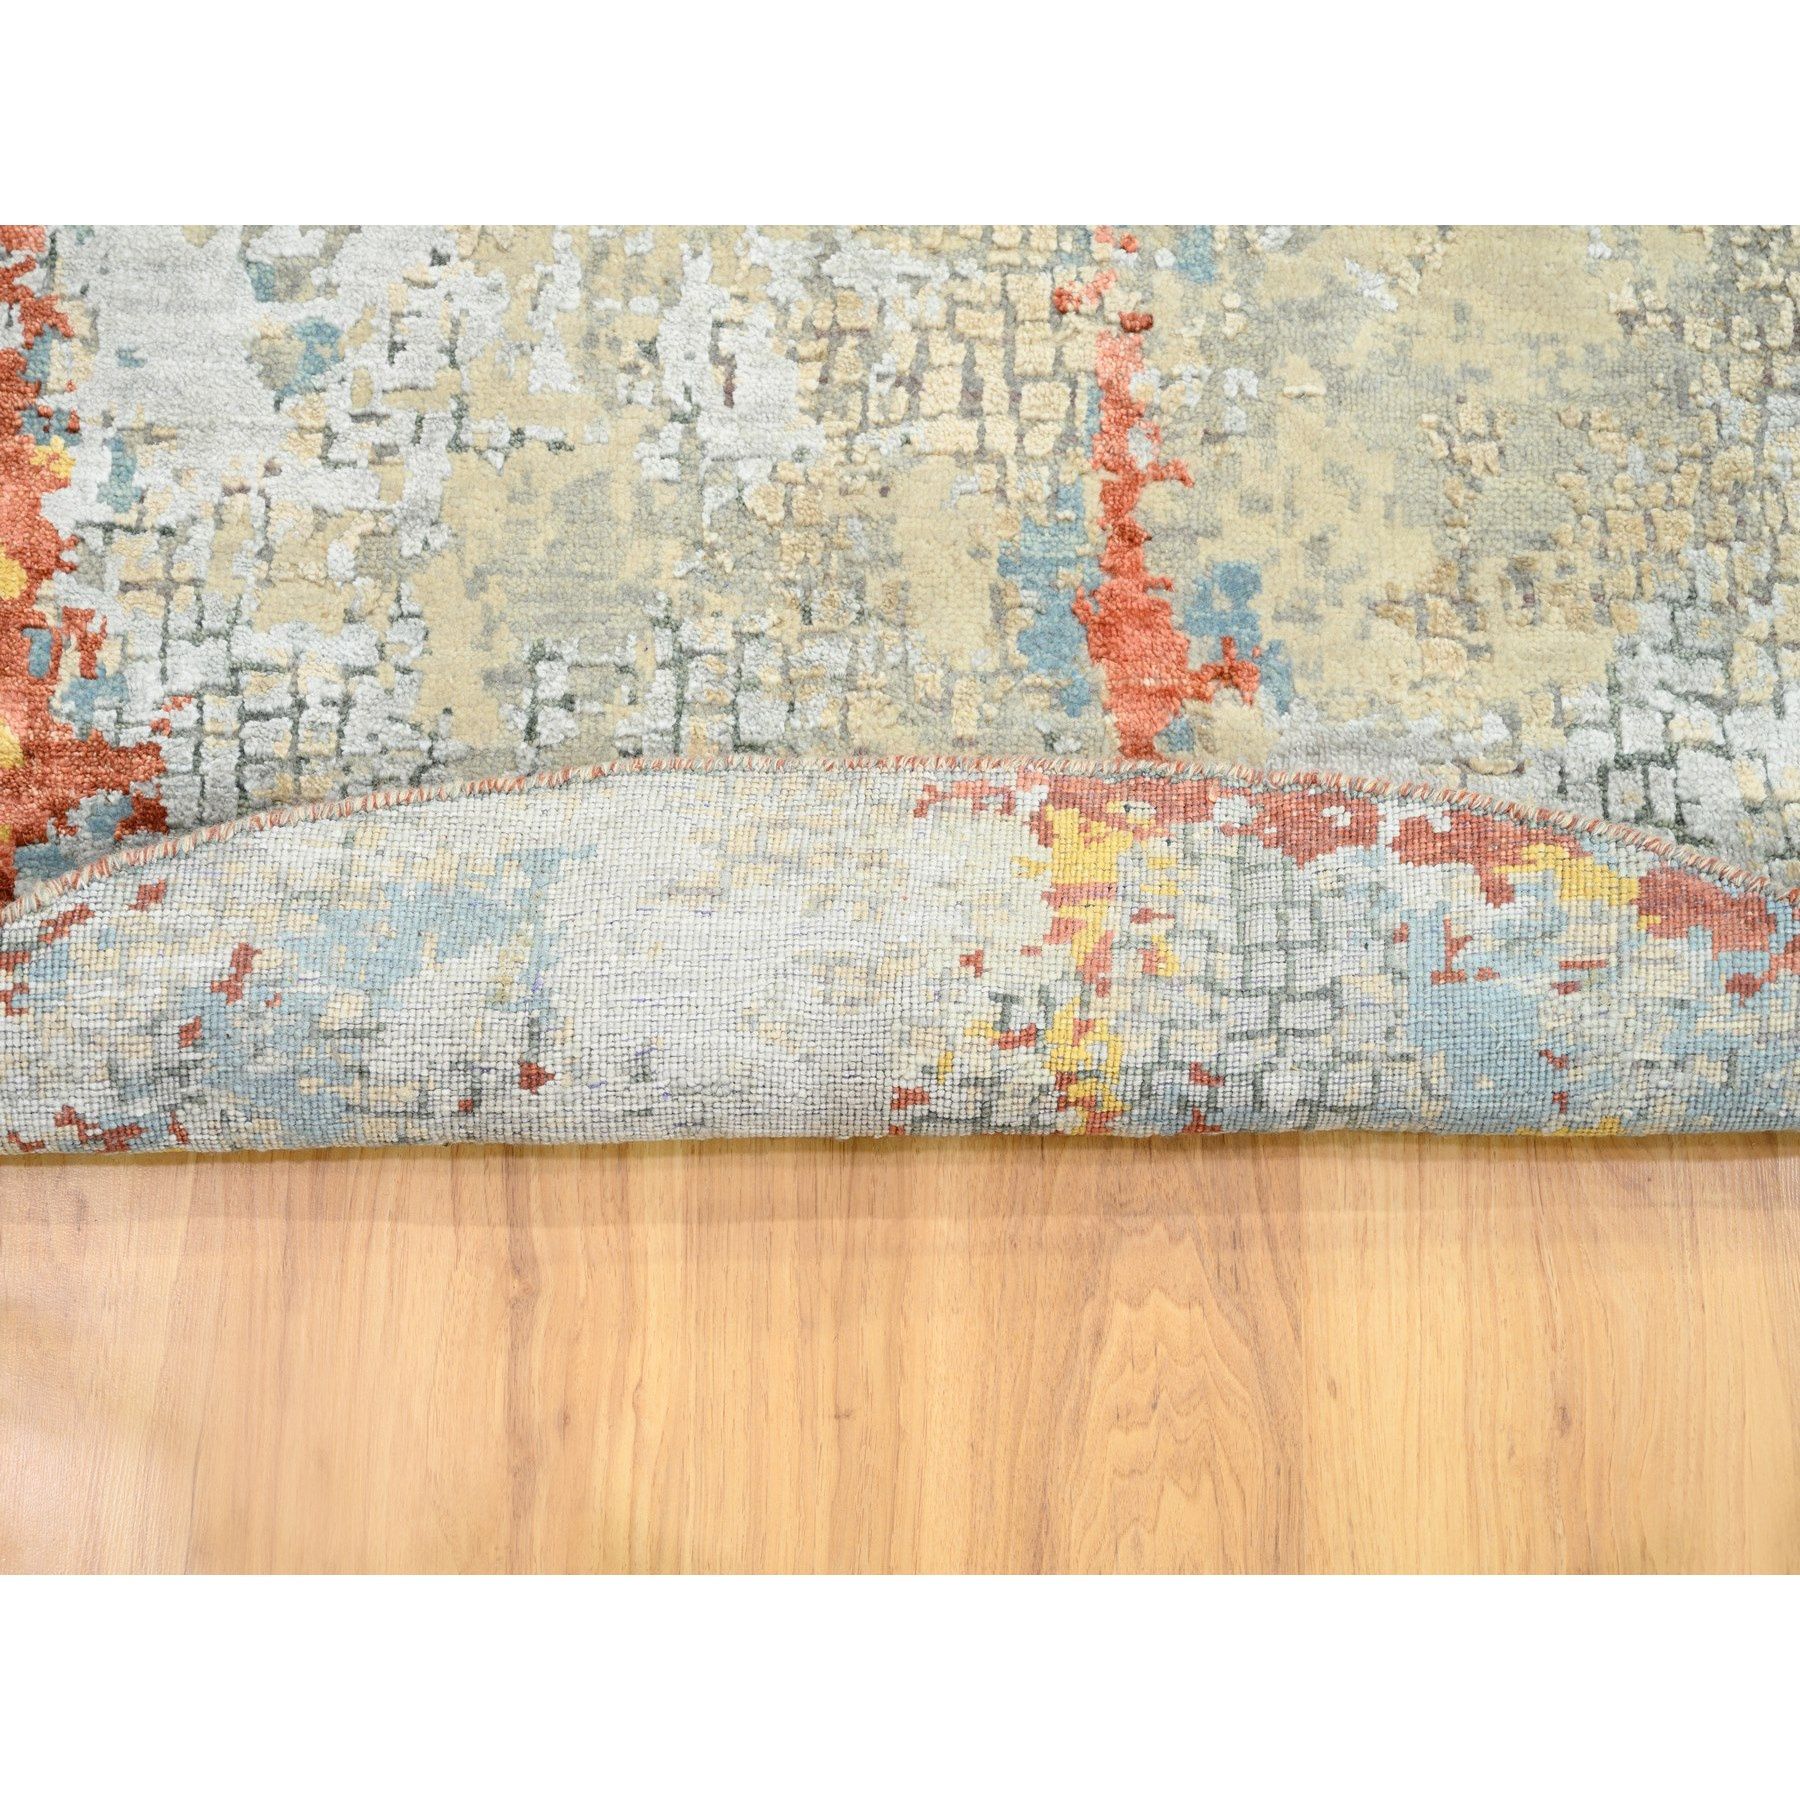 5'x5' Round Wool And Silk Abstract With Fire Mosaic Design Hand Knotted Oriental Rug